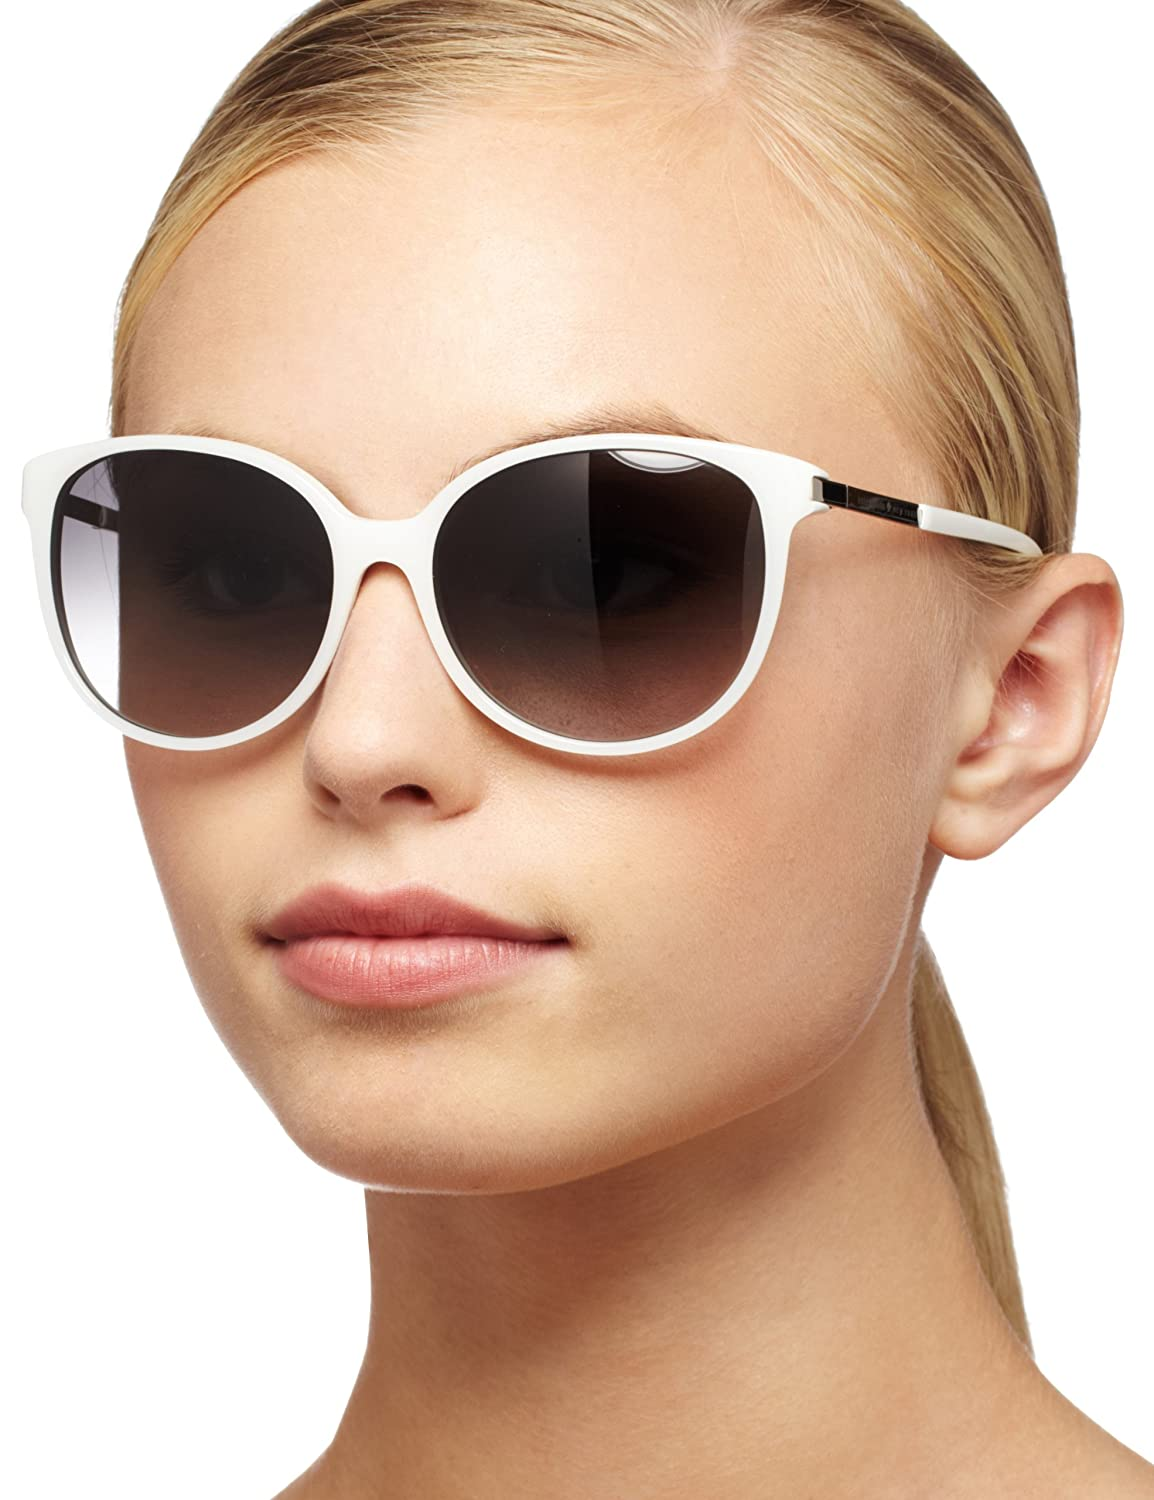 6d5ec95e9a92 KATE SPADE SHAWNA/S Sunglasses 01Y4 White 56-15-135: Amazon.co.uk: Clothing